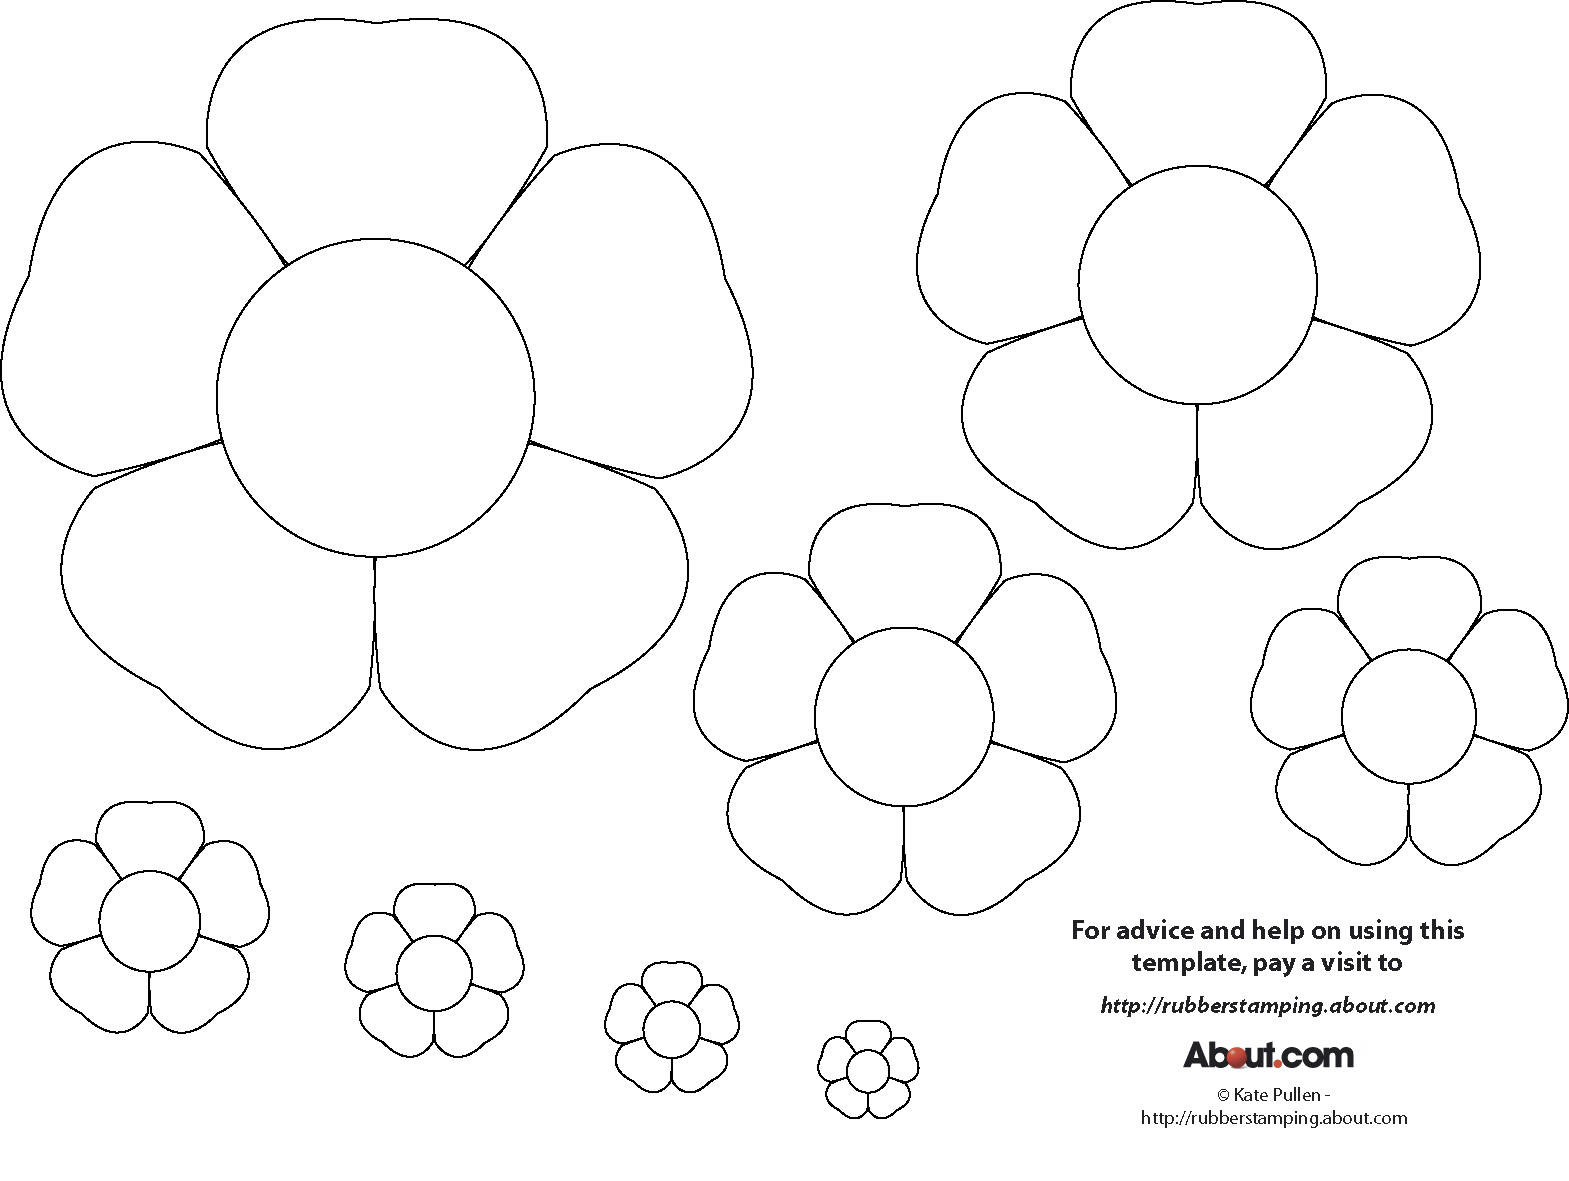 early play templates: Flower templates free